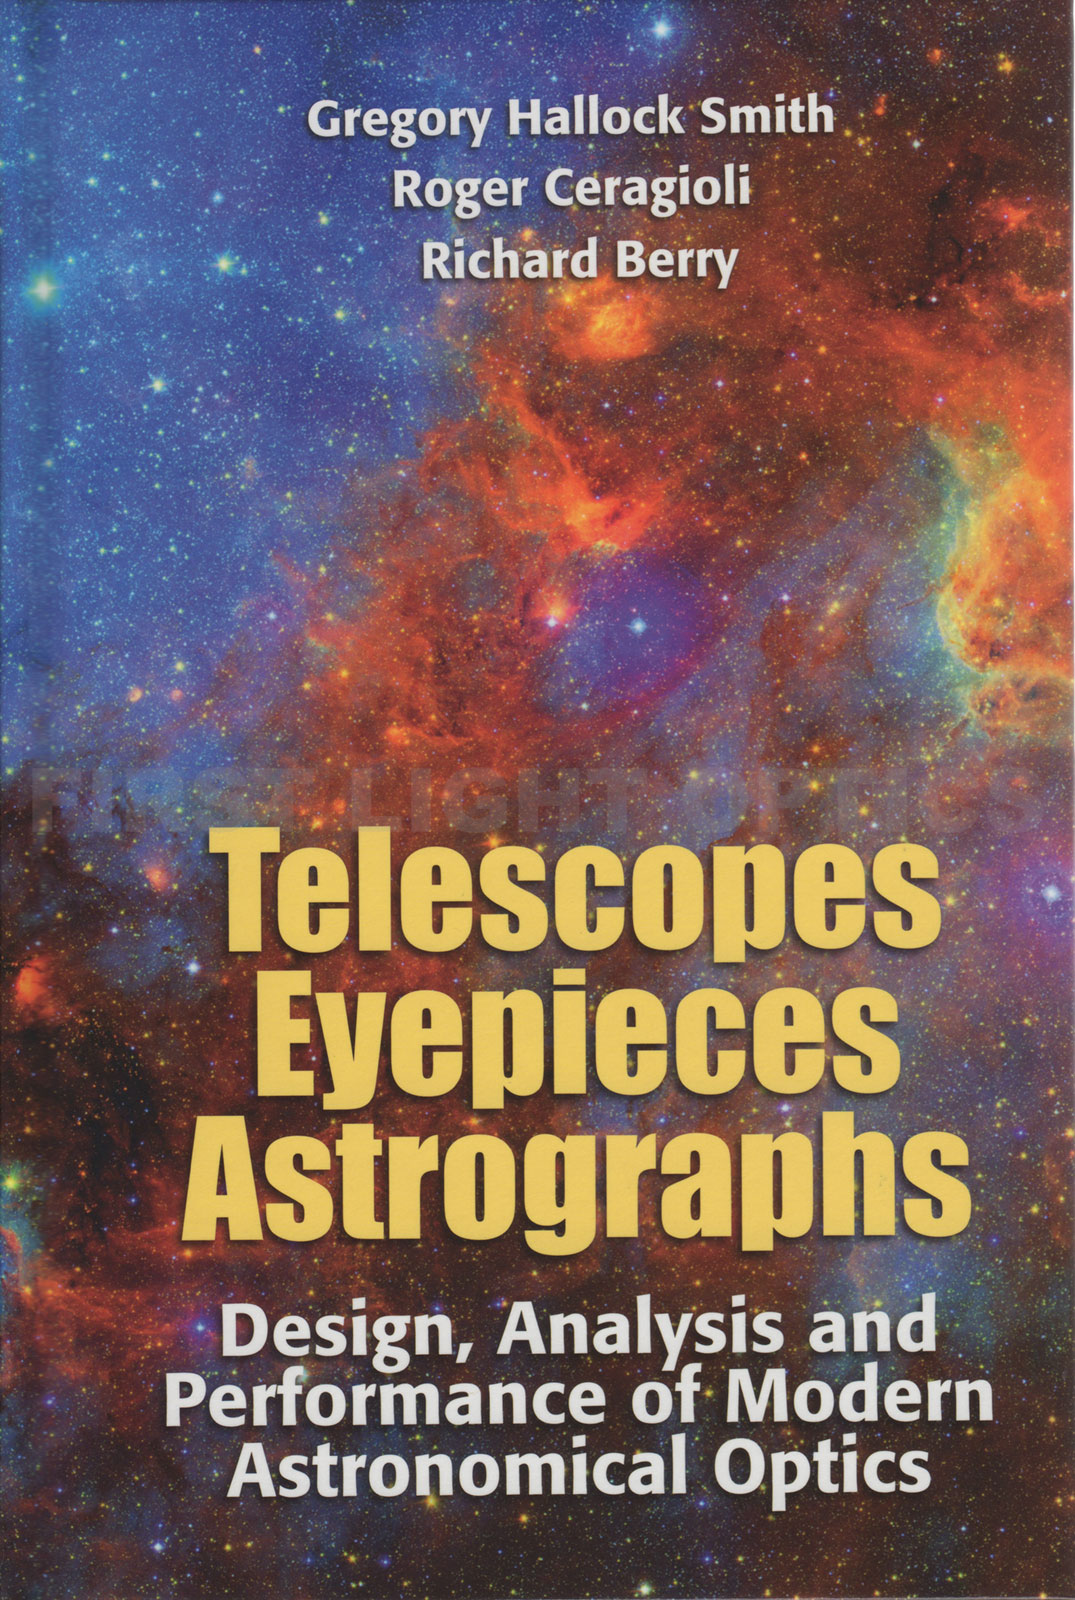 Telescopes, Eyepieces & Astrographs